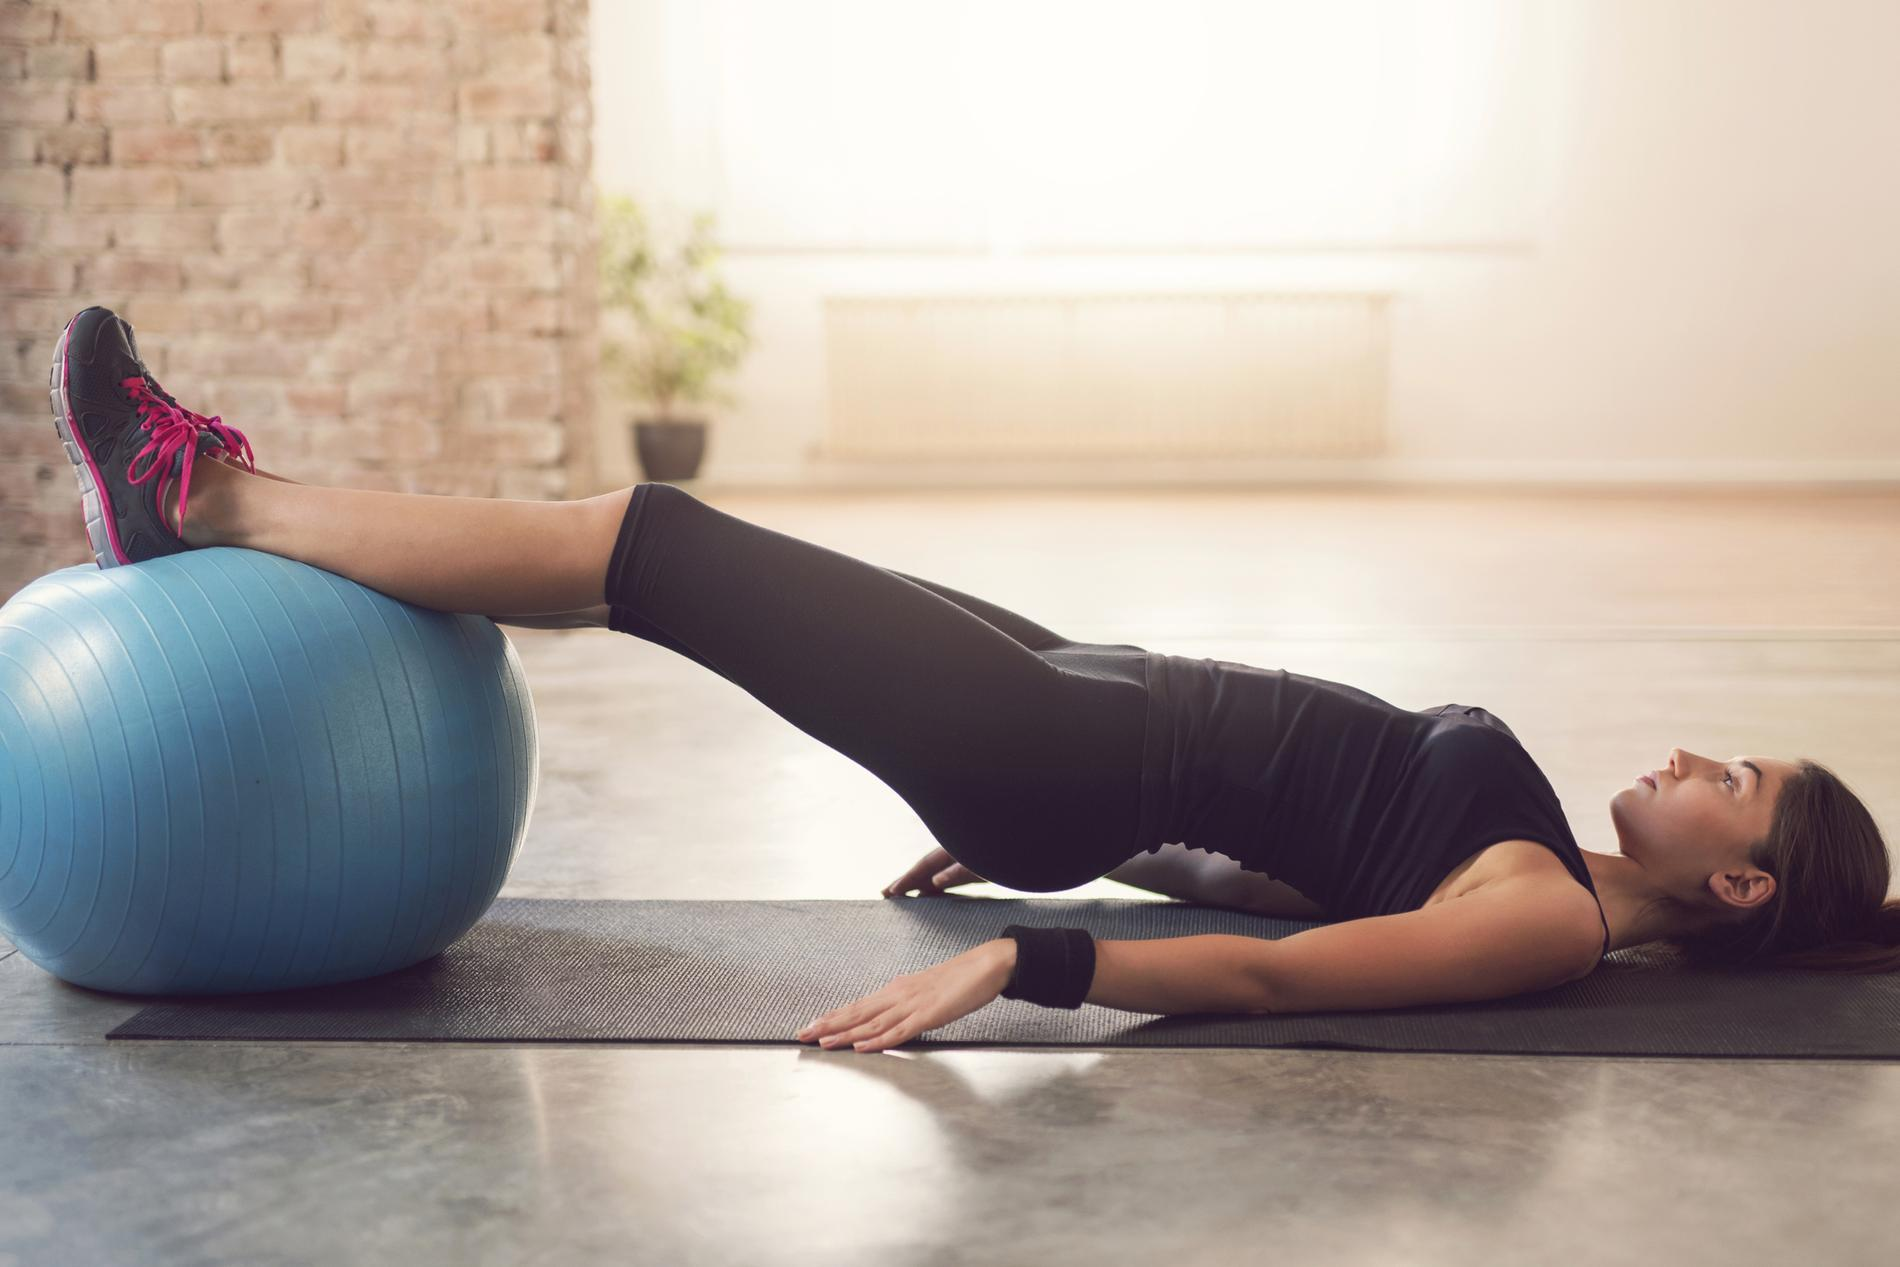 Les exercices faire avec un ballon de pilates pour for Abdos fessiers exercices a la maison